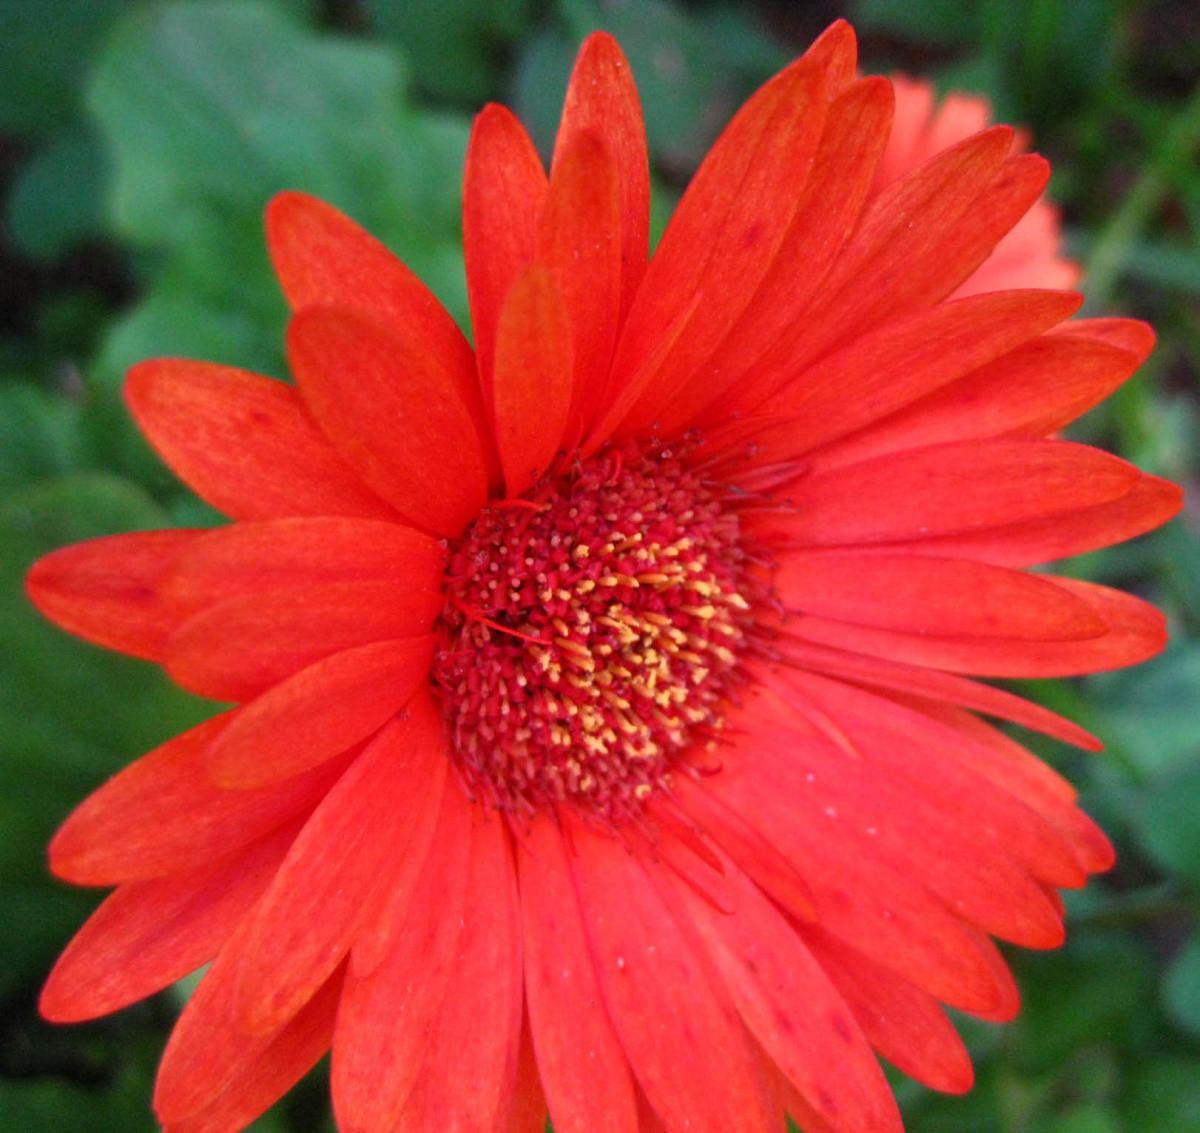 The simplicity of a brightly-colored Gerbera daisy makes me smile